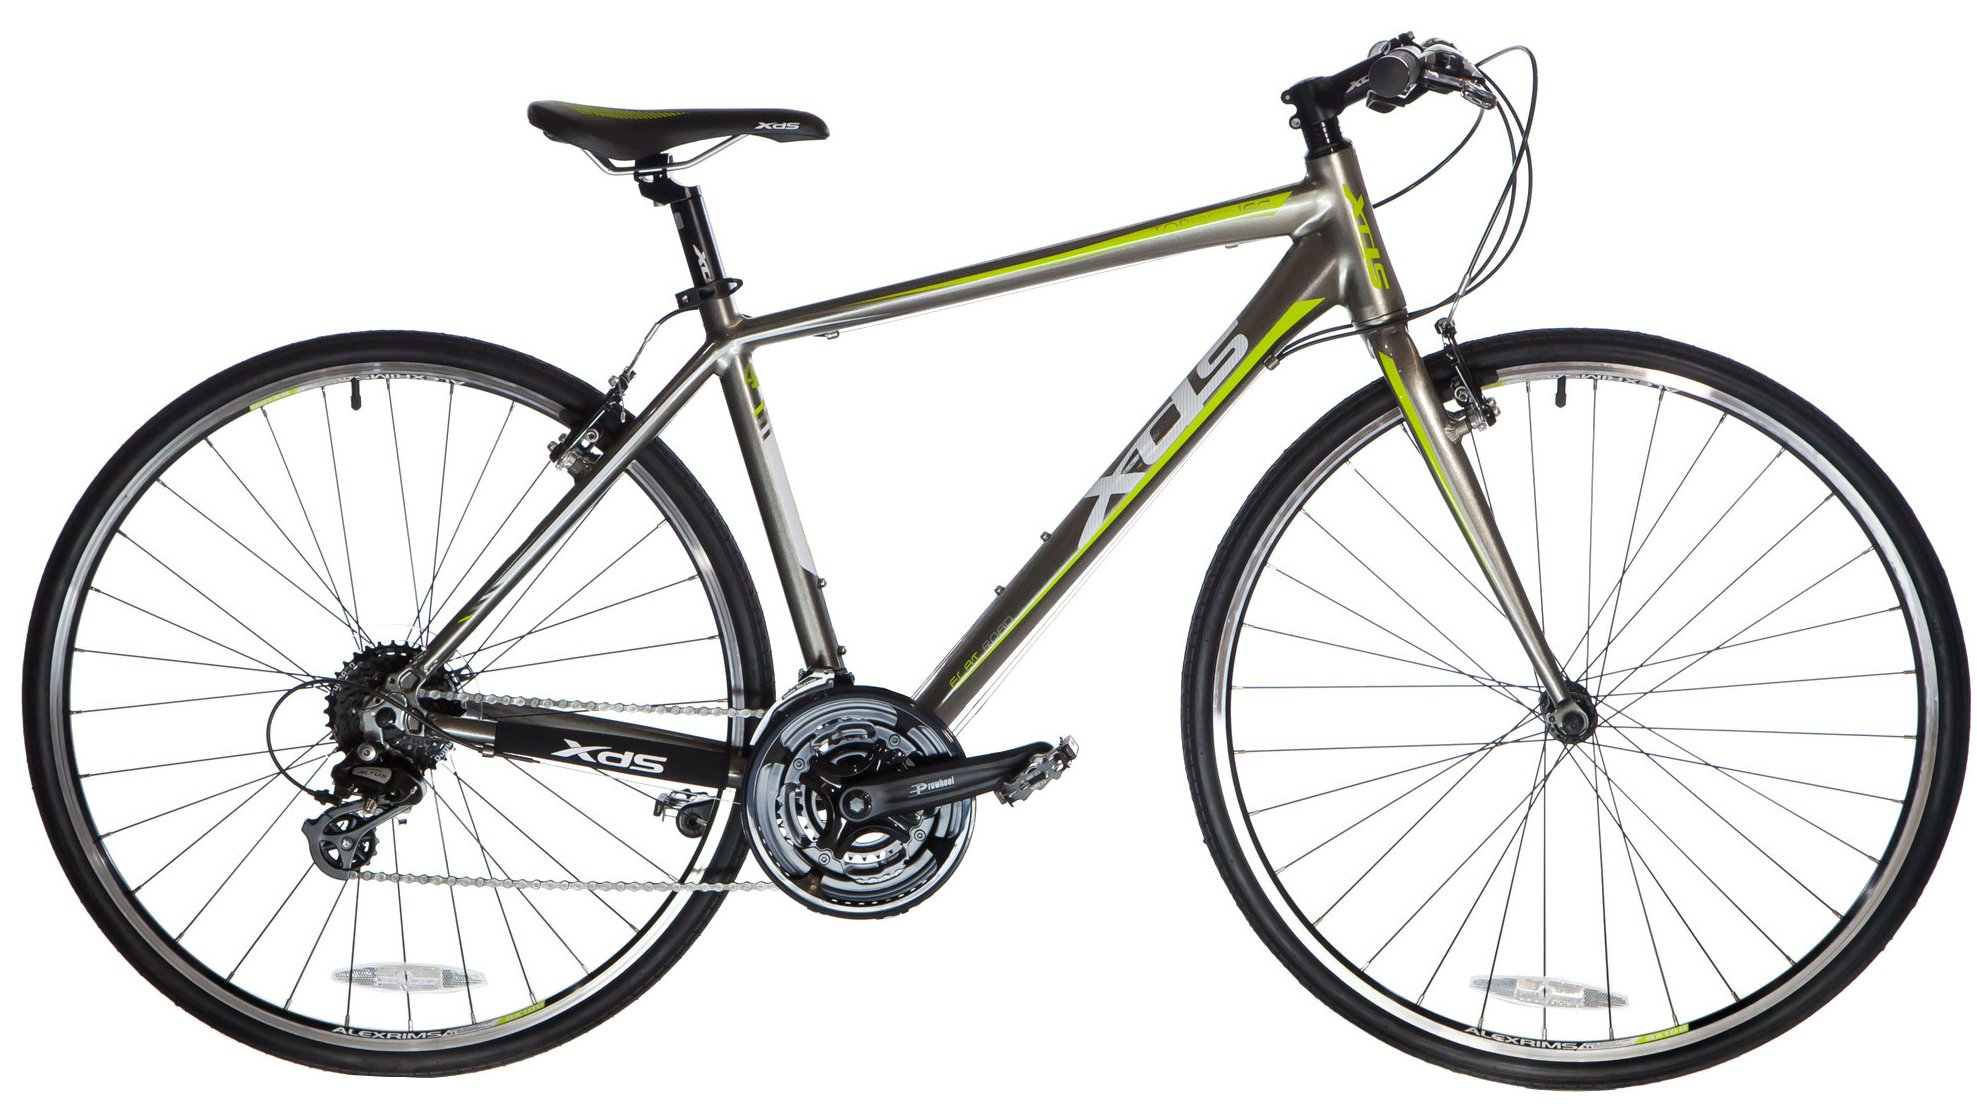 Xds men s t150 pavement hybrid 24 speed bicycle 2016